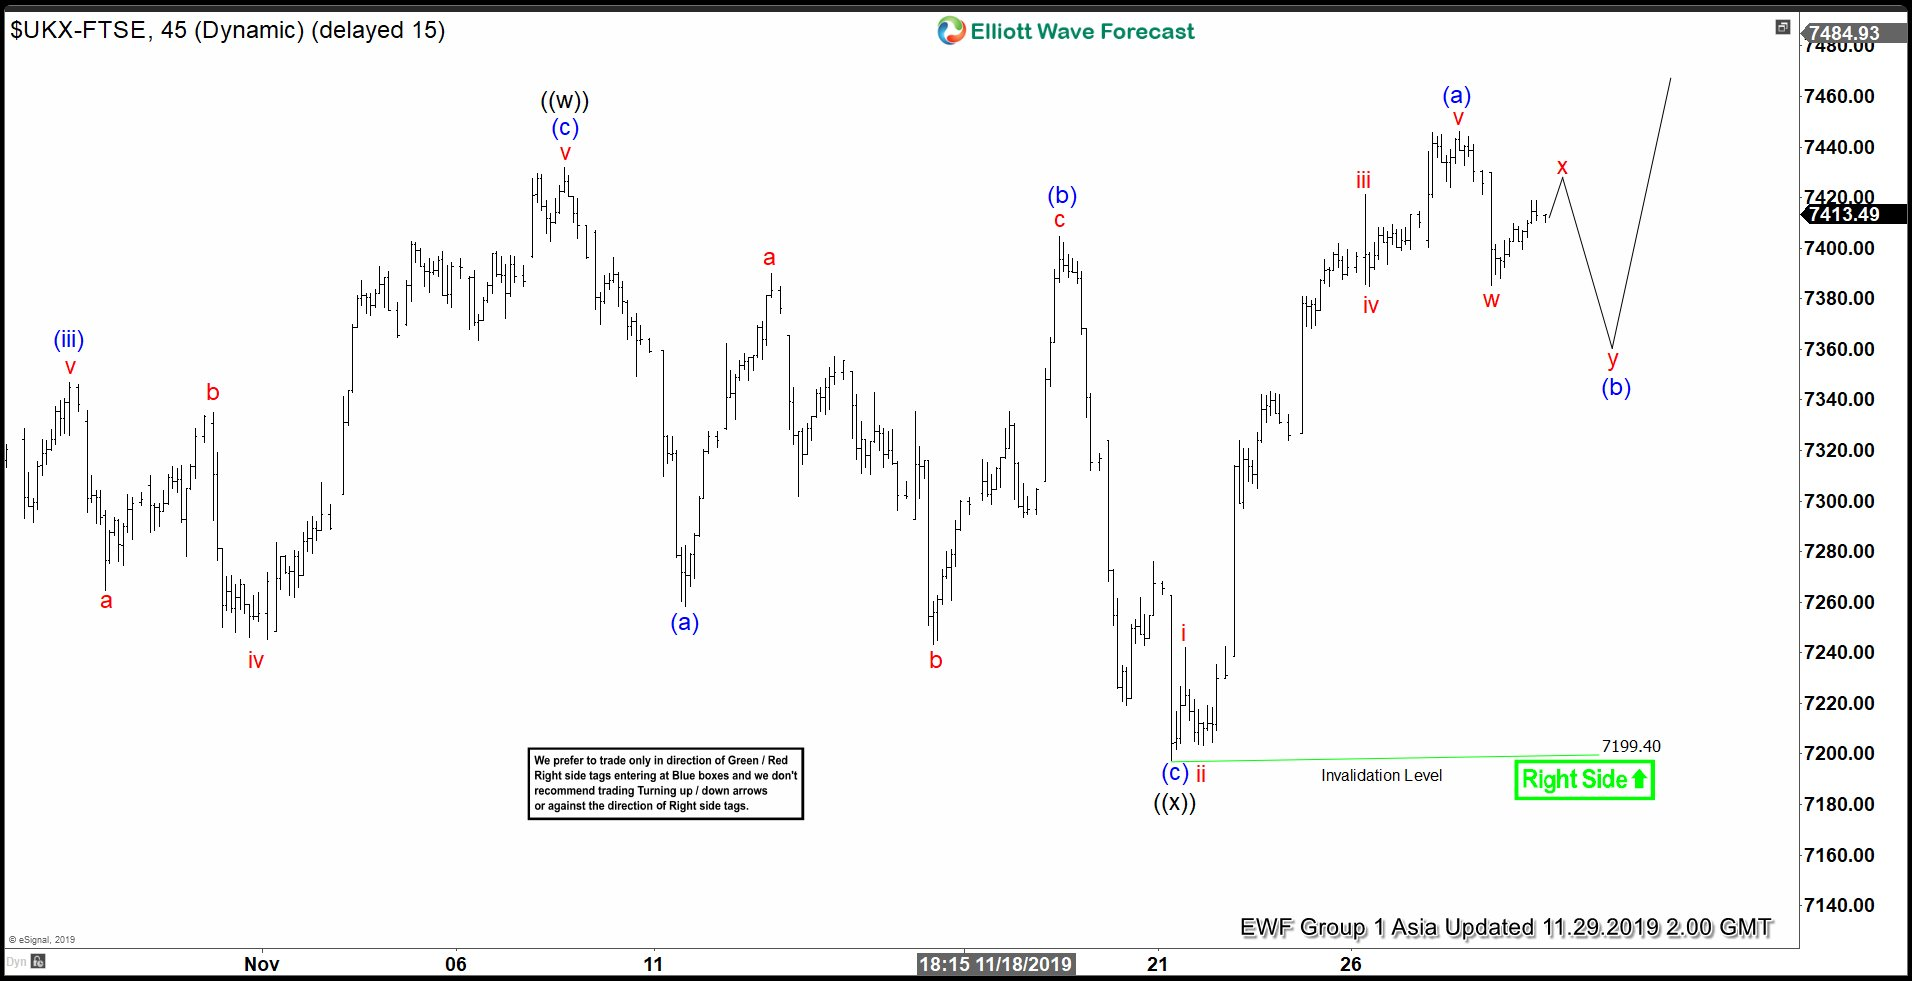 Elliott Wave View: FTSE Bullish Sequence Favors Higher